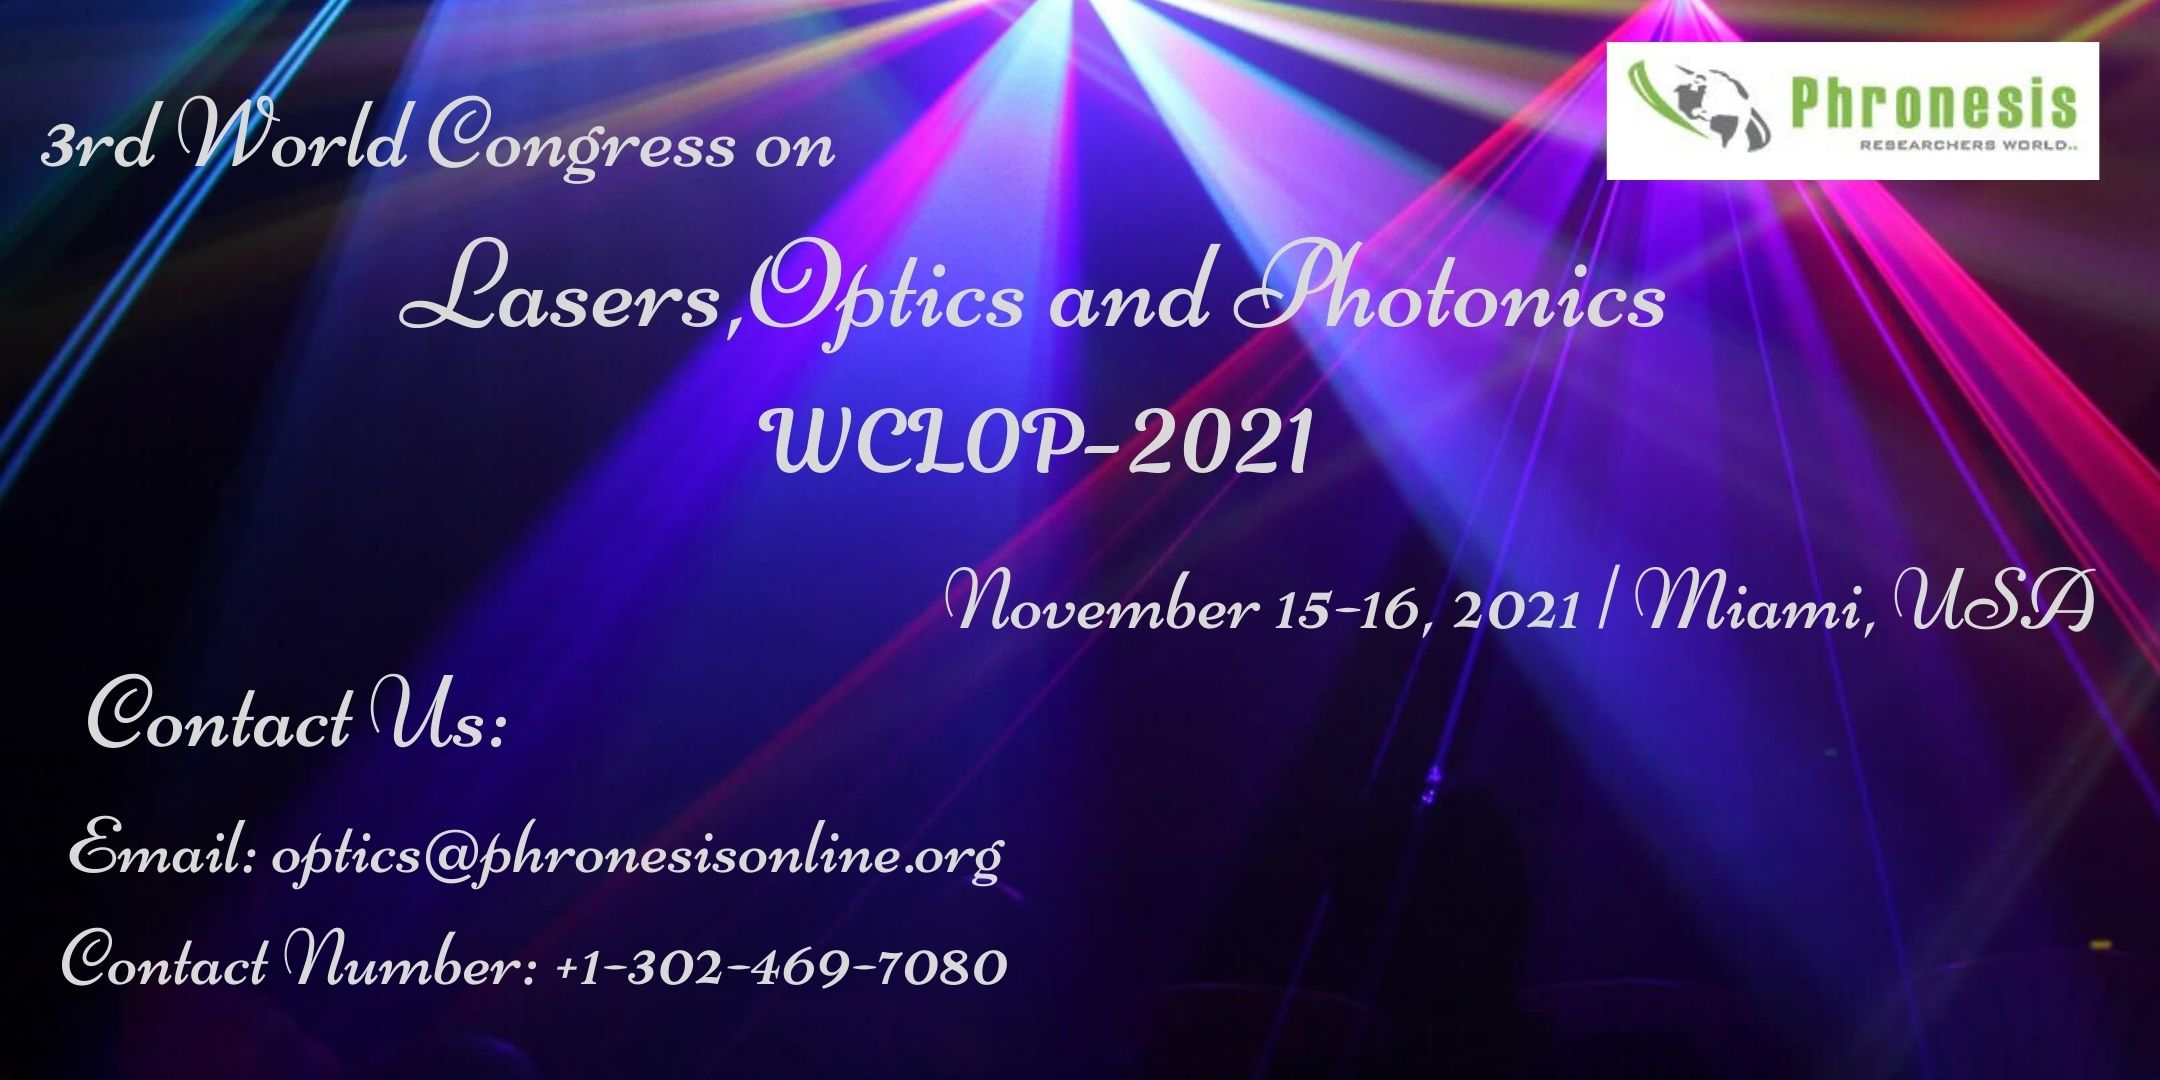 3rd World Congress On Lasers, Optics and Photonics - WCLOP 2021